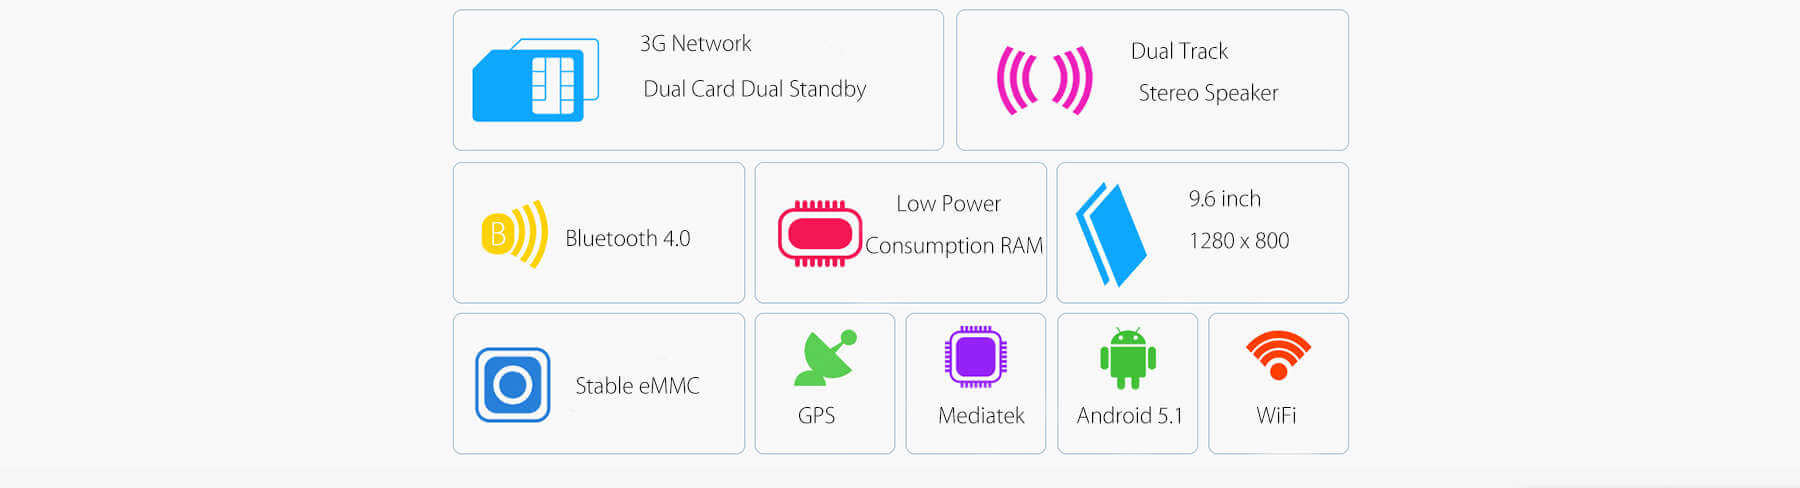 teclast-p98-phablet-specifications